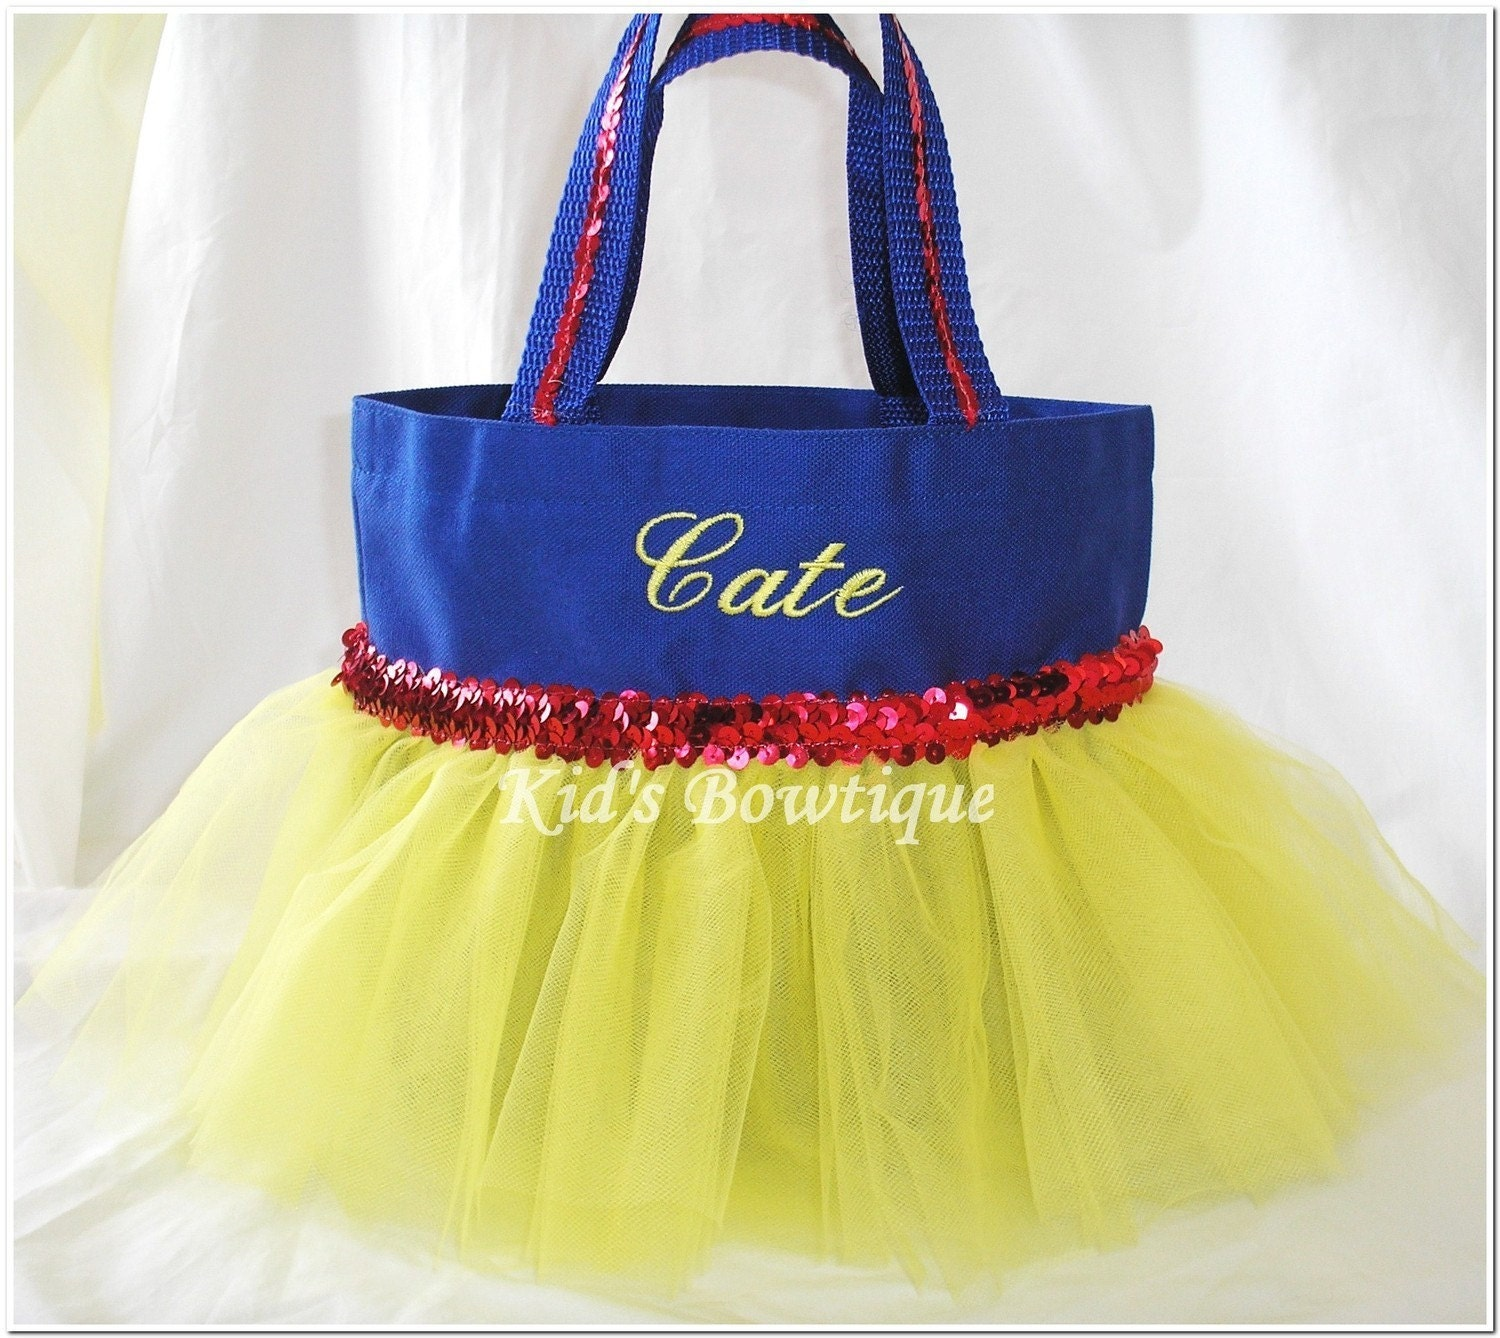 snow white tutu personalized bag bag monogrammed